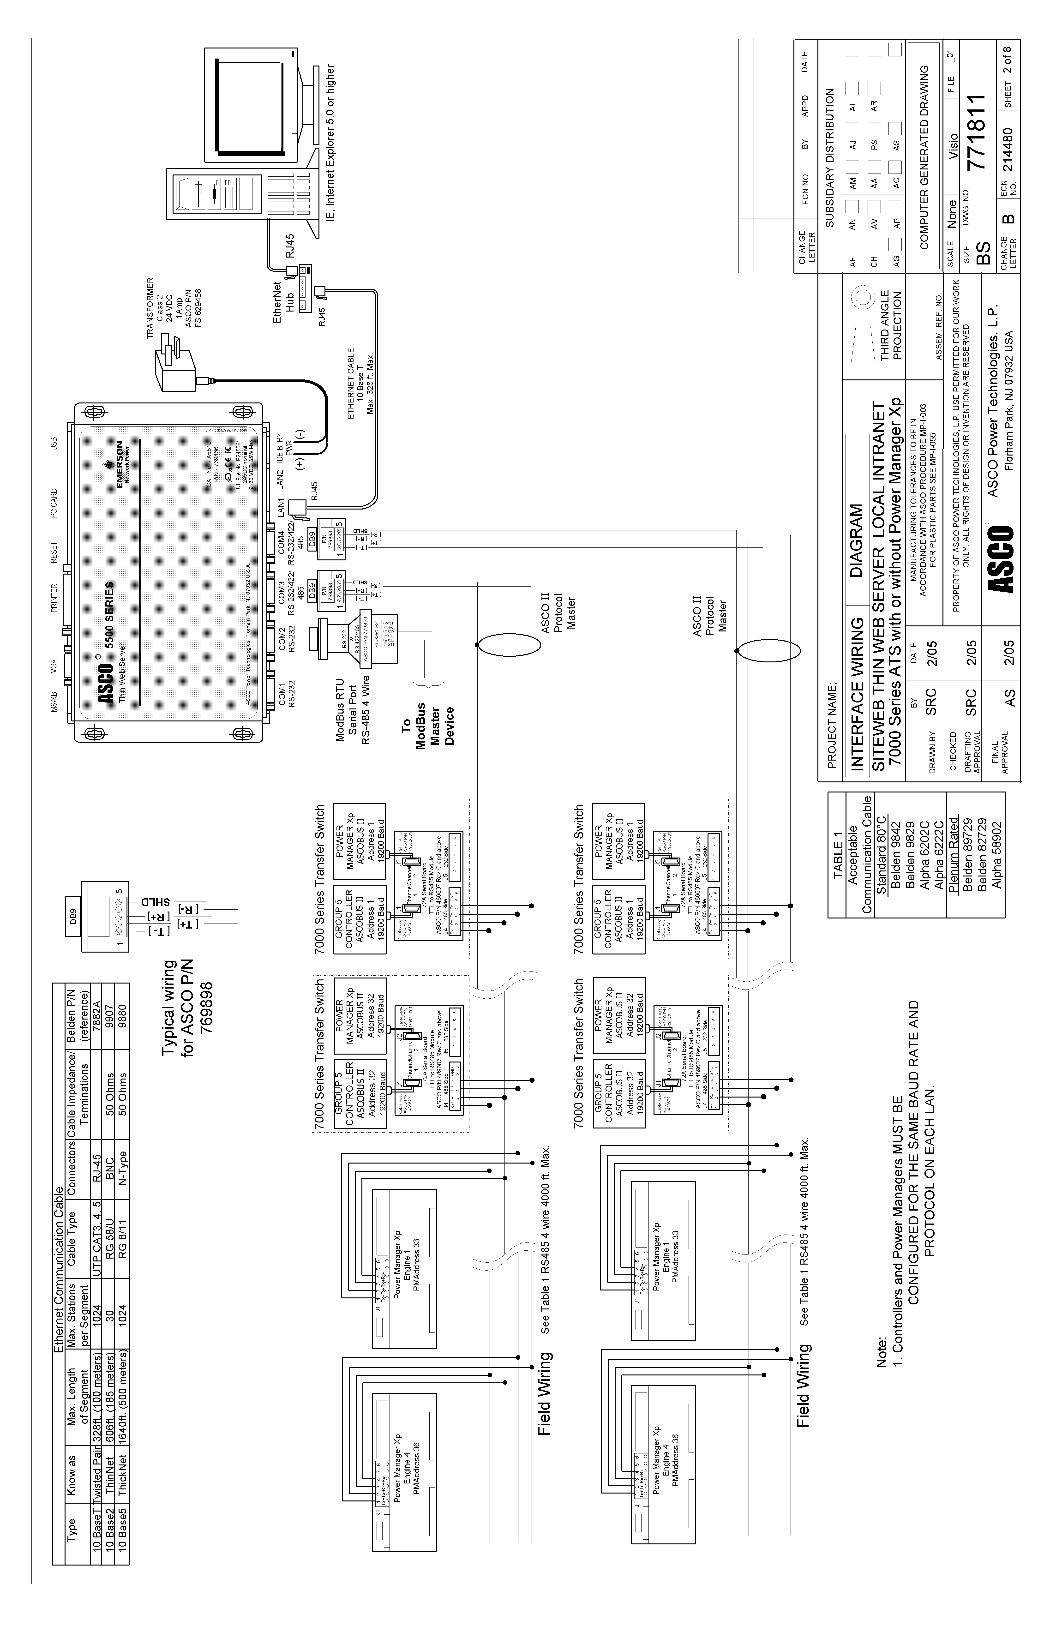 York Rooftop Unit Wiring Diagram Gallery Wiring Diagram